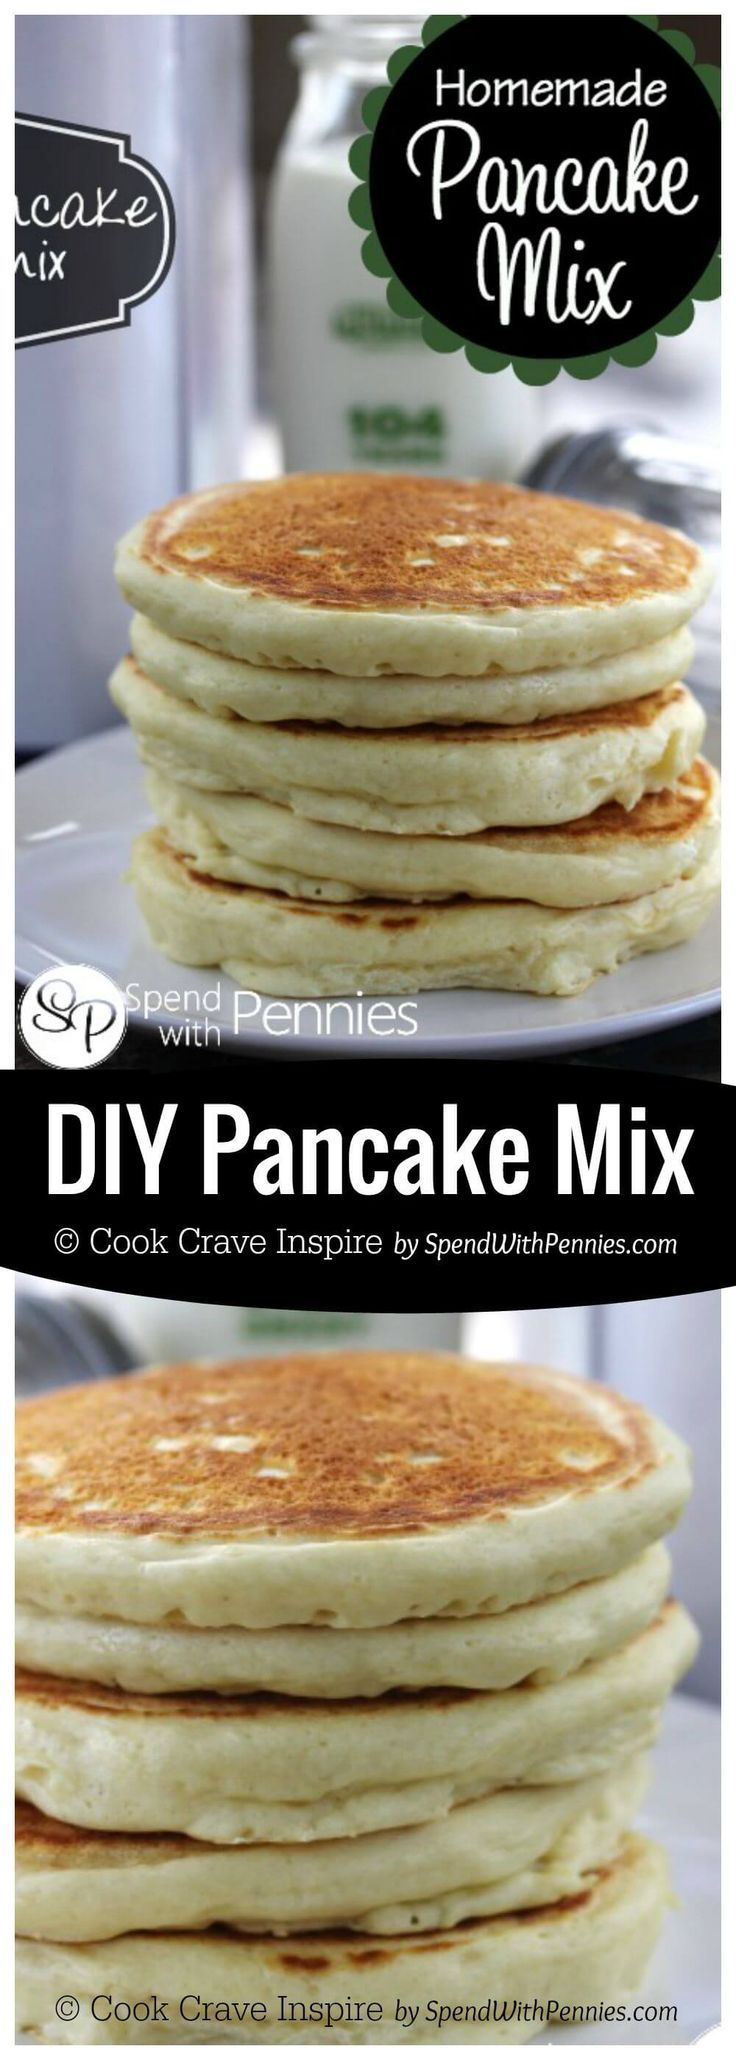 Homemade Pancake Mix Recipe {So Easy!} - Spend with Pennies